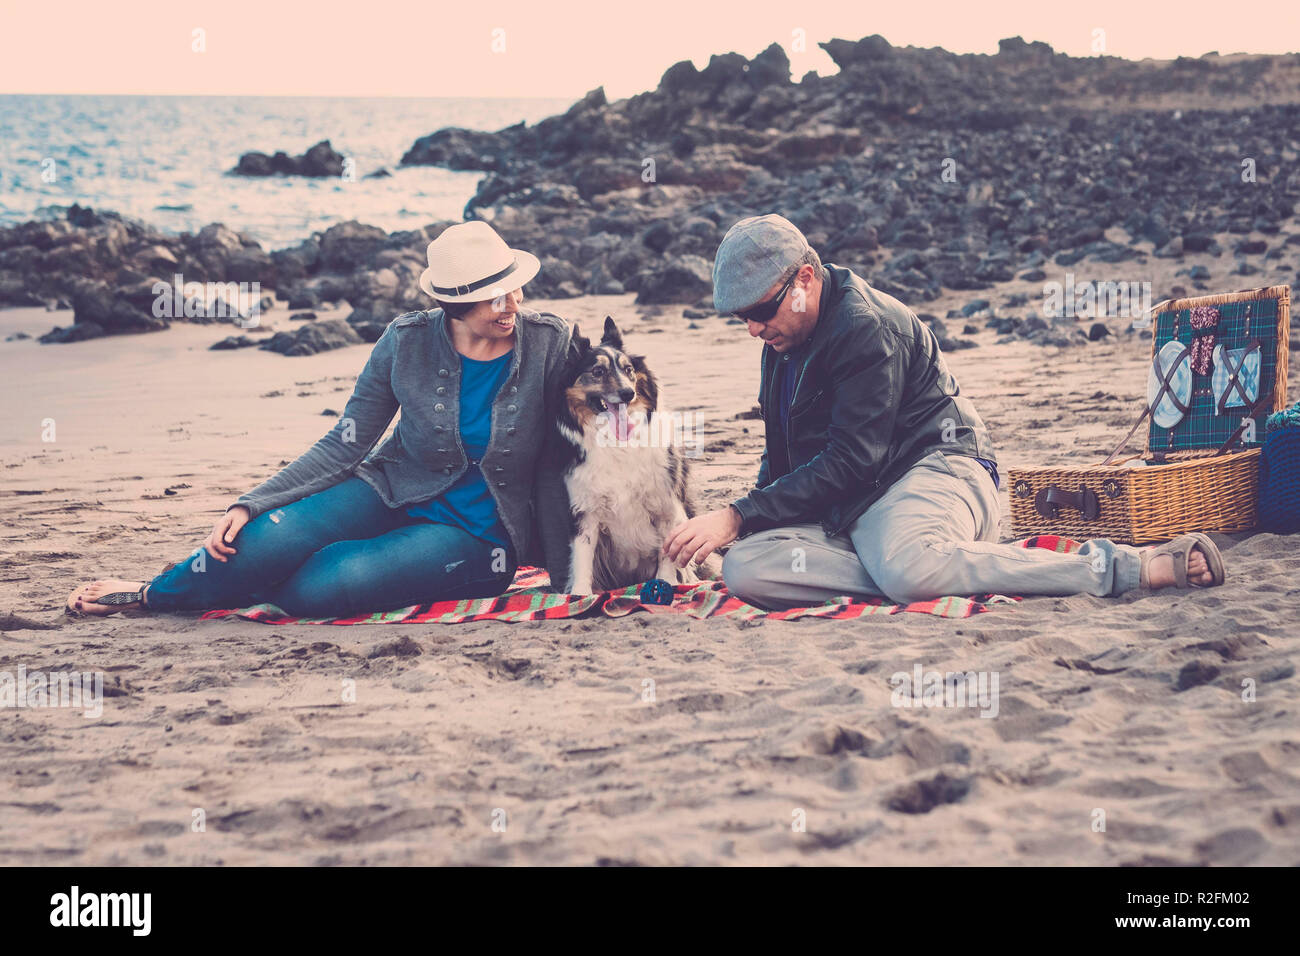 family with a border collie dog doing pic nic activity on the beach in vacation, summer lifestyle with friends concept. old style and vintage filter Stock Photo